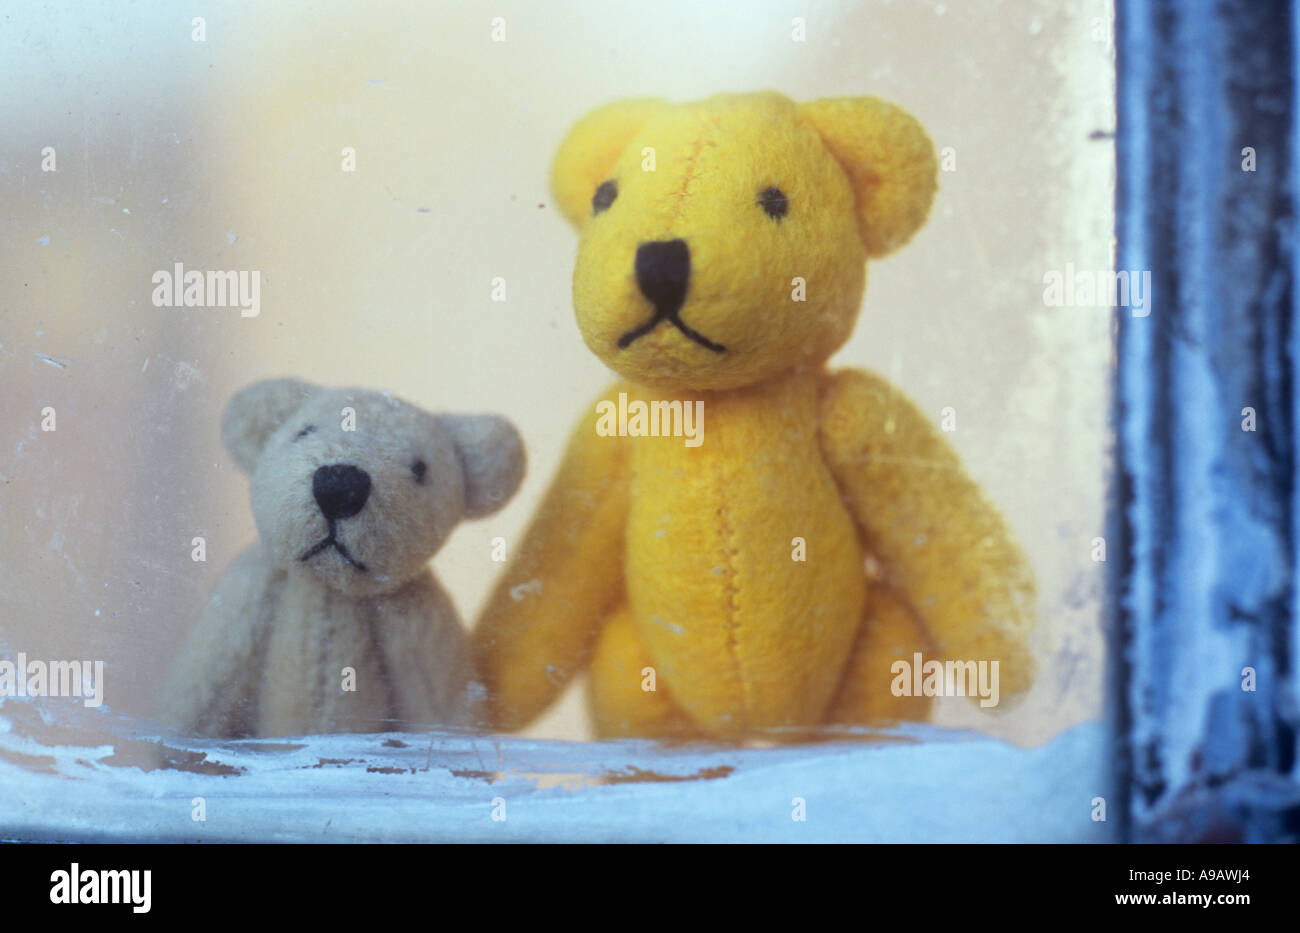 Close up of a mum or dad or sibling teddy bear with a young child ted standing looking out yearningly through a window - Stock Image